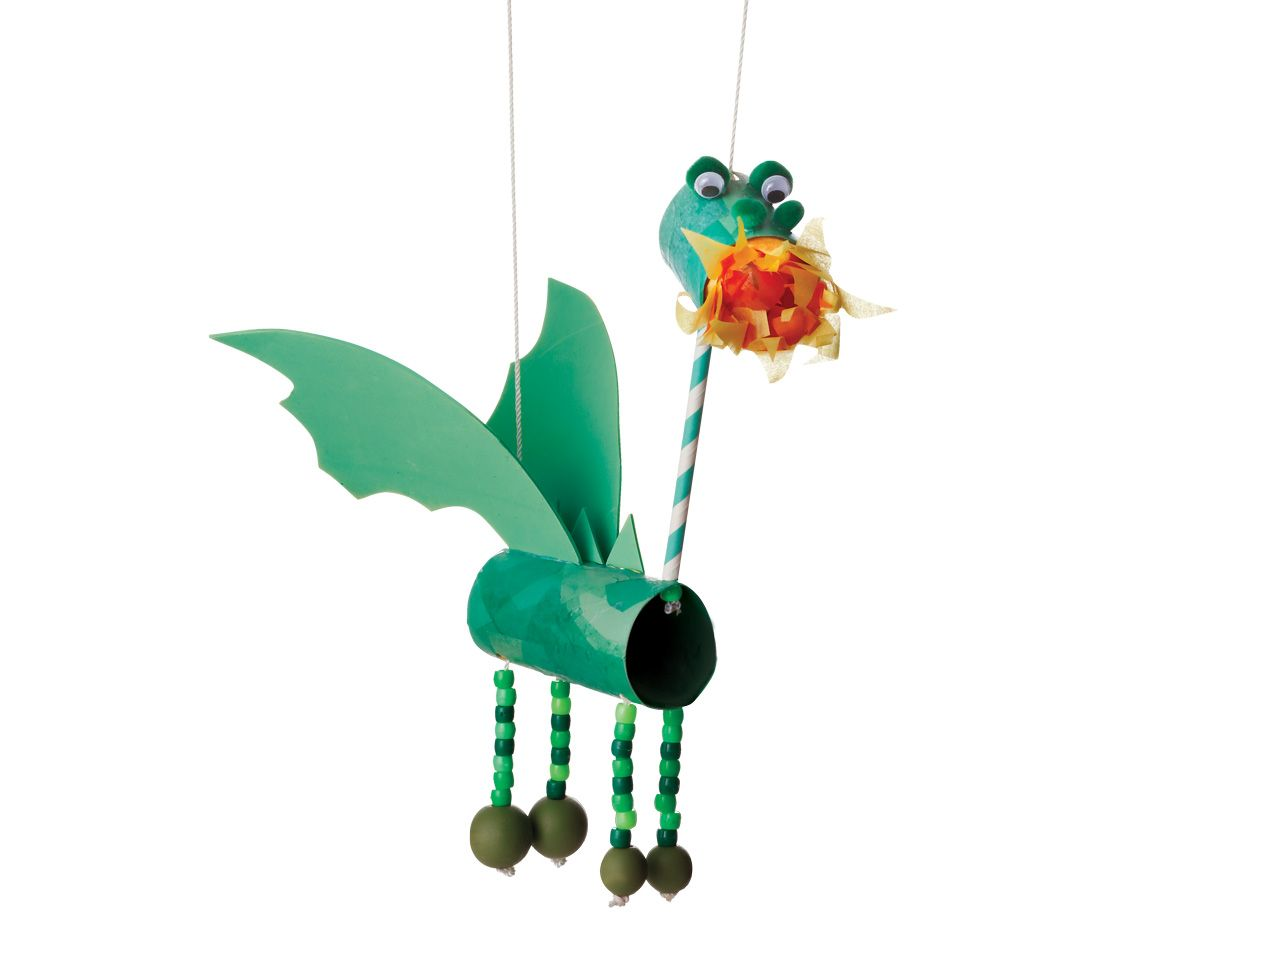 Recycled crafts: How to make a dancing dragon marionette